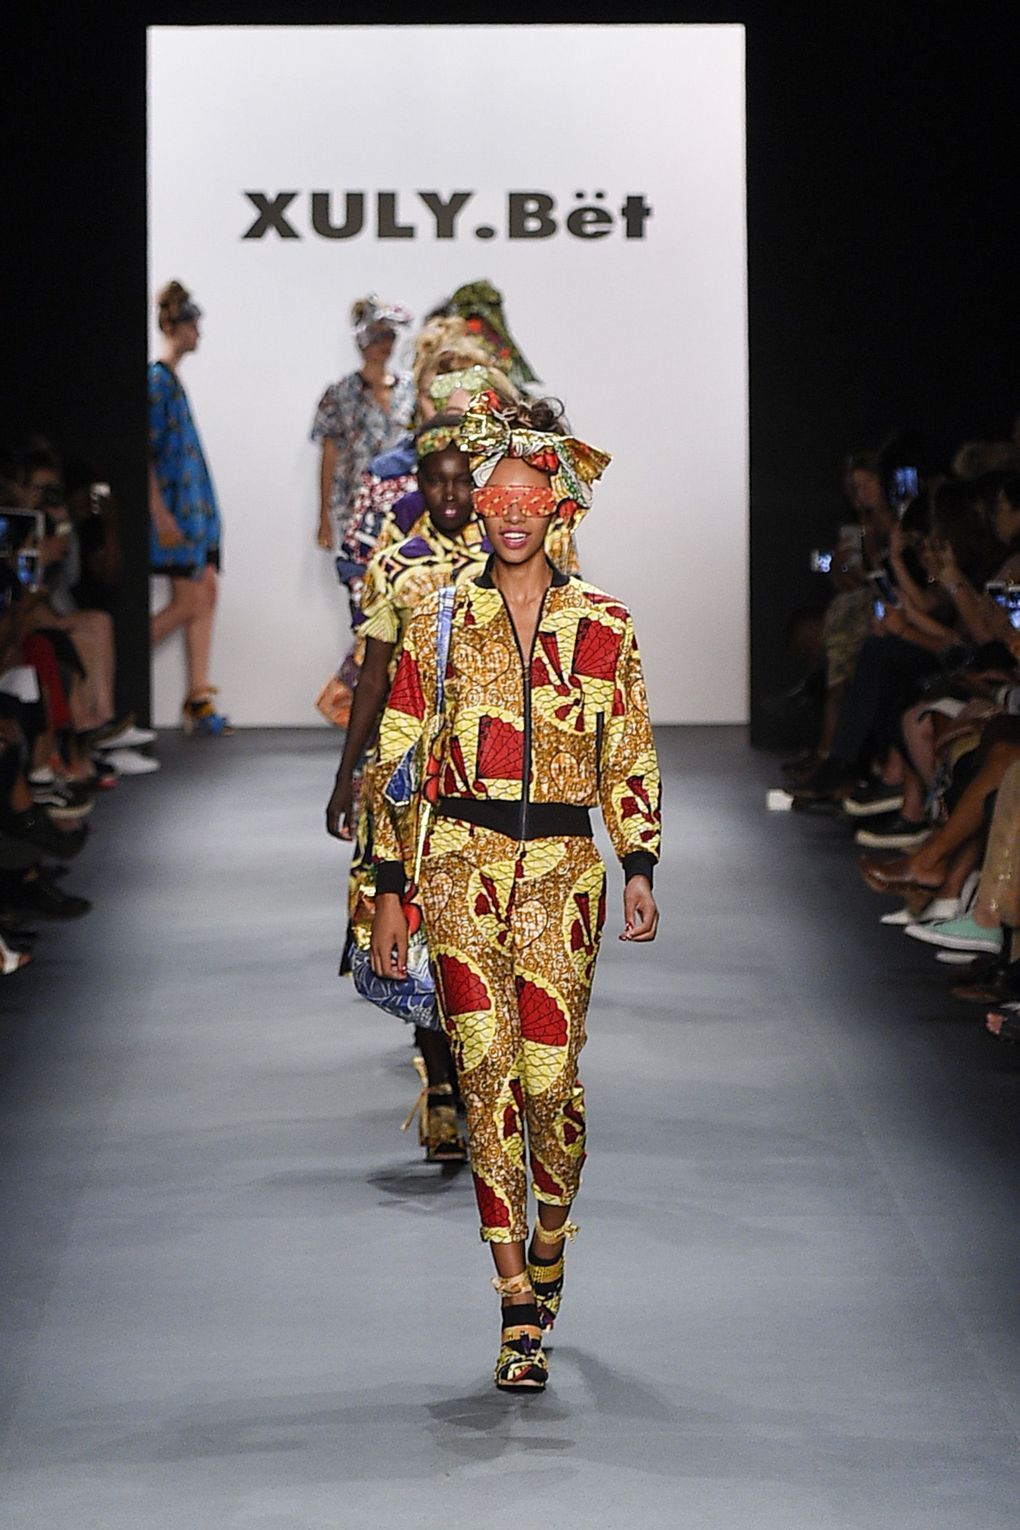 fashion-week-xuly-be%cc%88t-xuly-be%cc%88t-sprigsummer-2016-ready-to-wear-collection-25